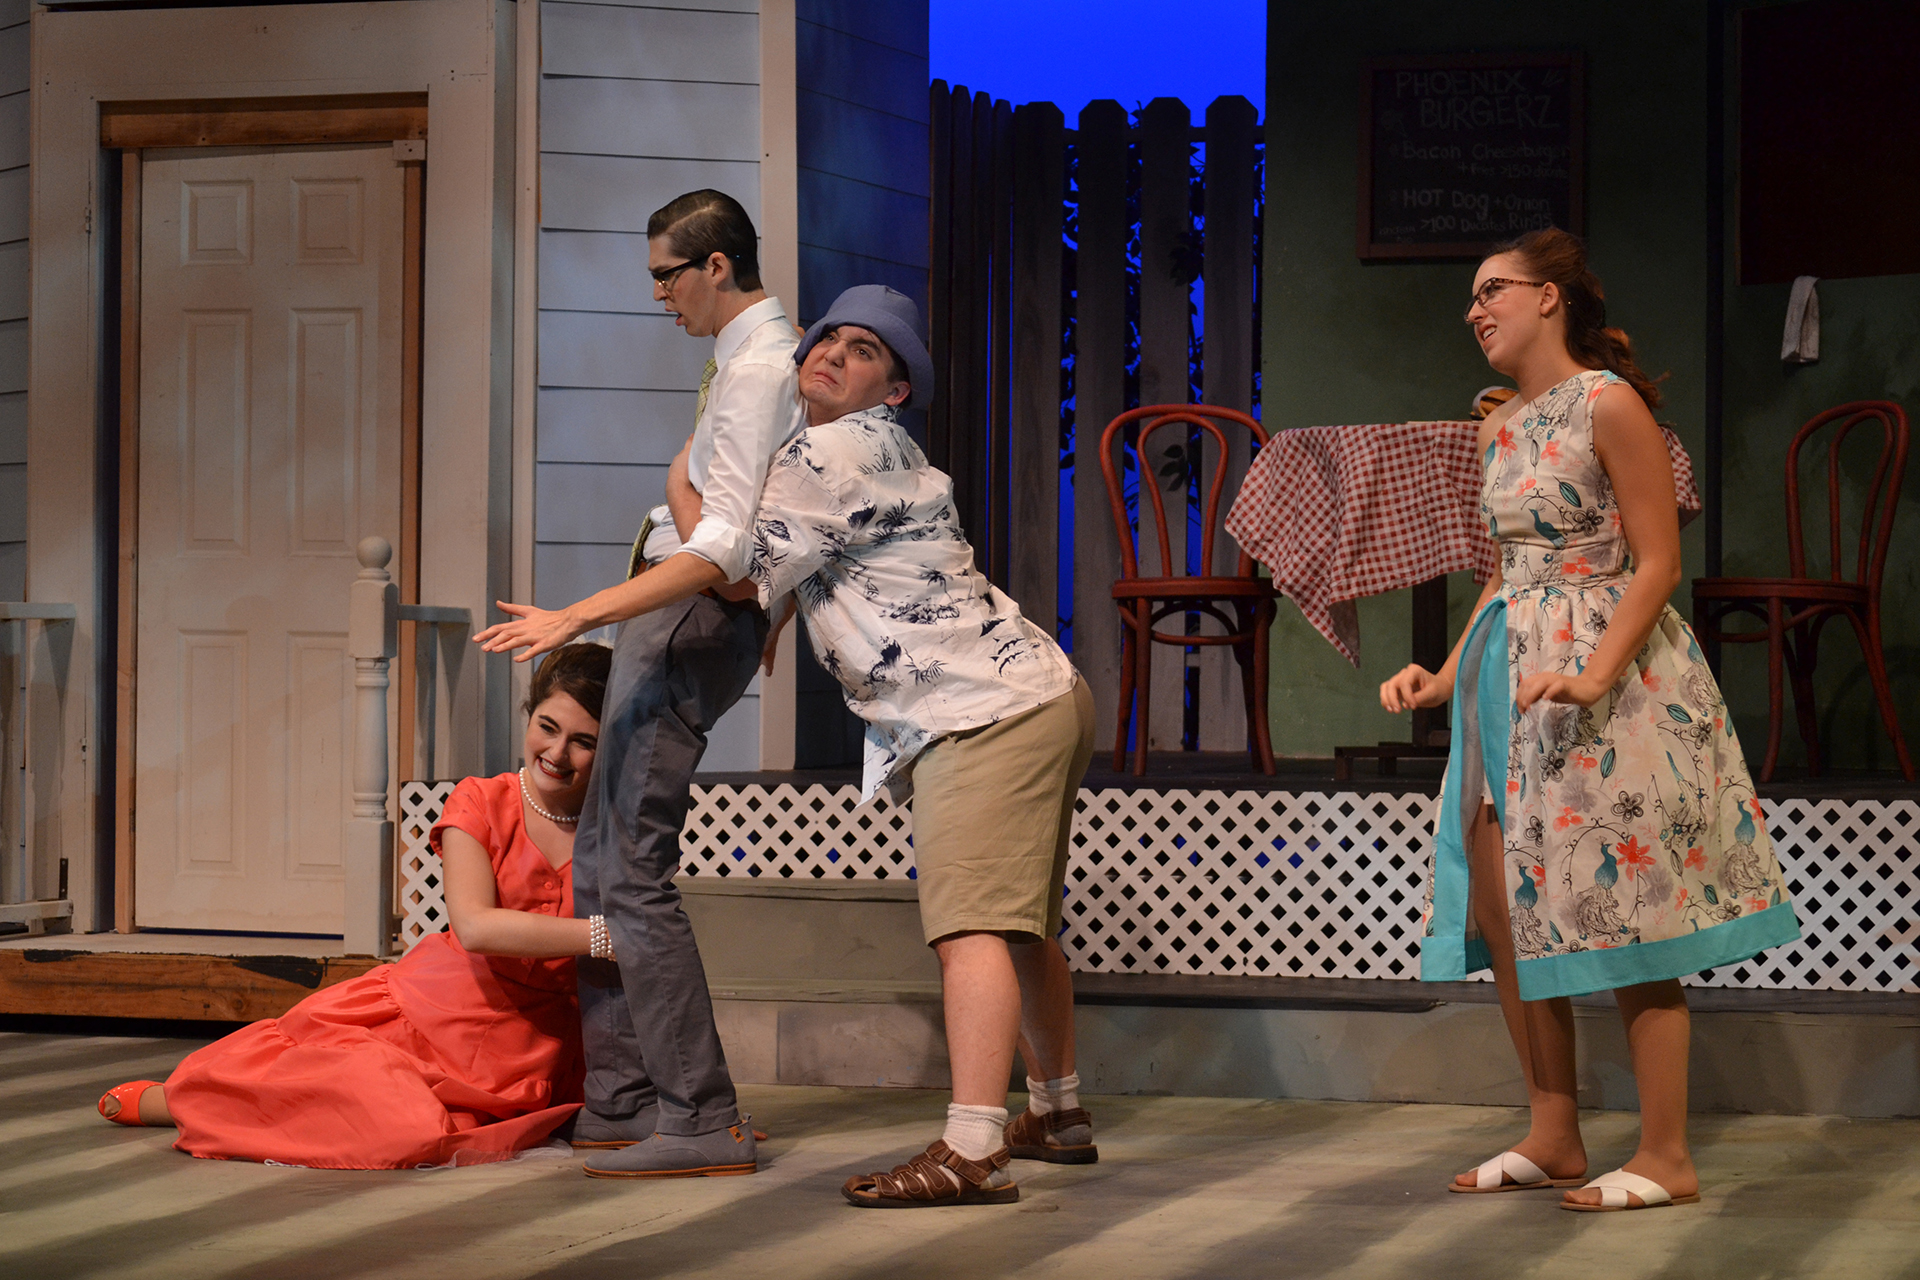 """The theatre department at California Baptist University is set to bring plenty of laughs and slapstick humor to the stage with Shakespeare's """"Comedy of Errors."""""""